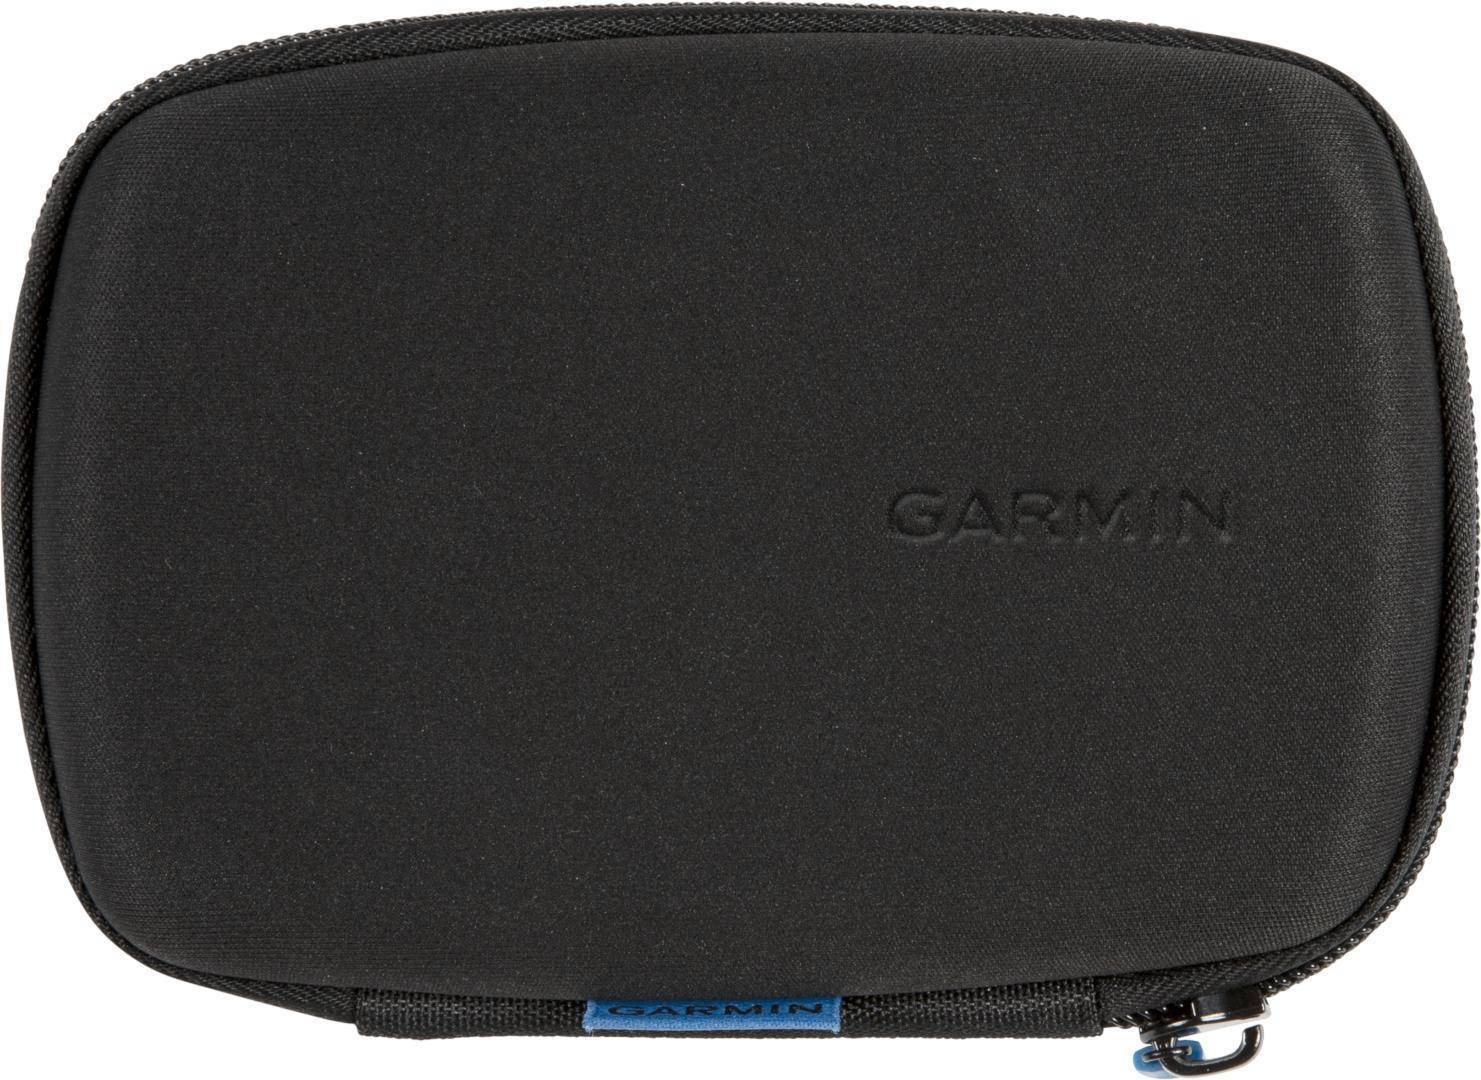 garmin zumo carrying bag black one size